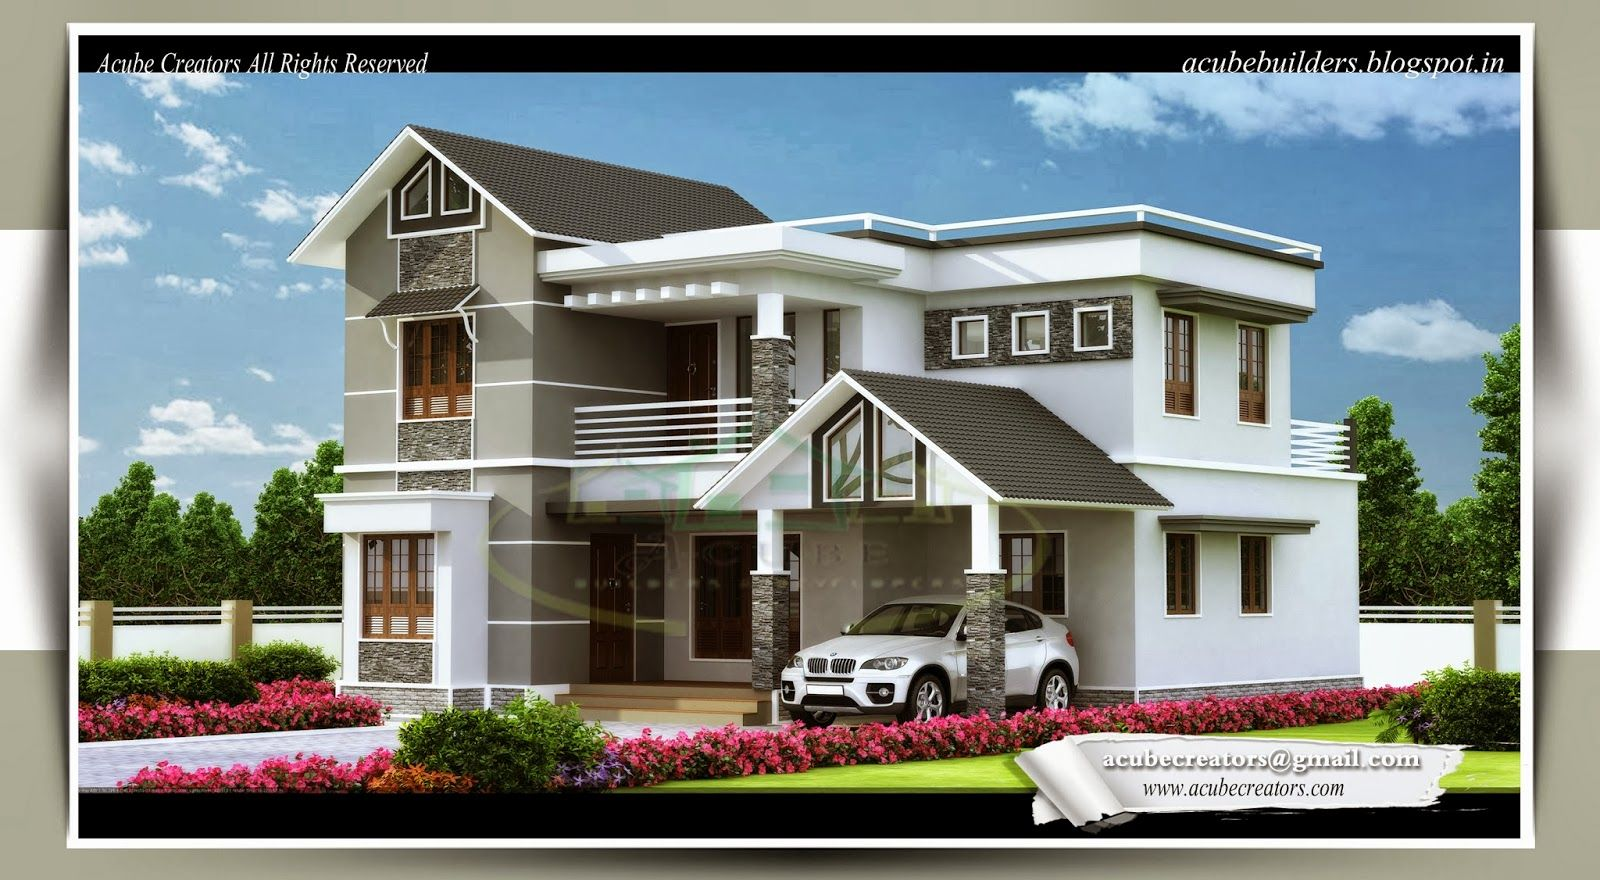 Home Design Pictures Interesting Home Design Gallery Fresh Ideas Kerala Home Design Photos  Home . Design Ideas